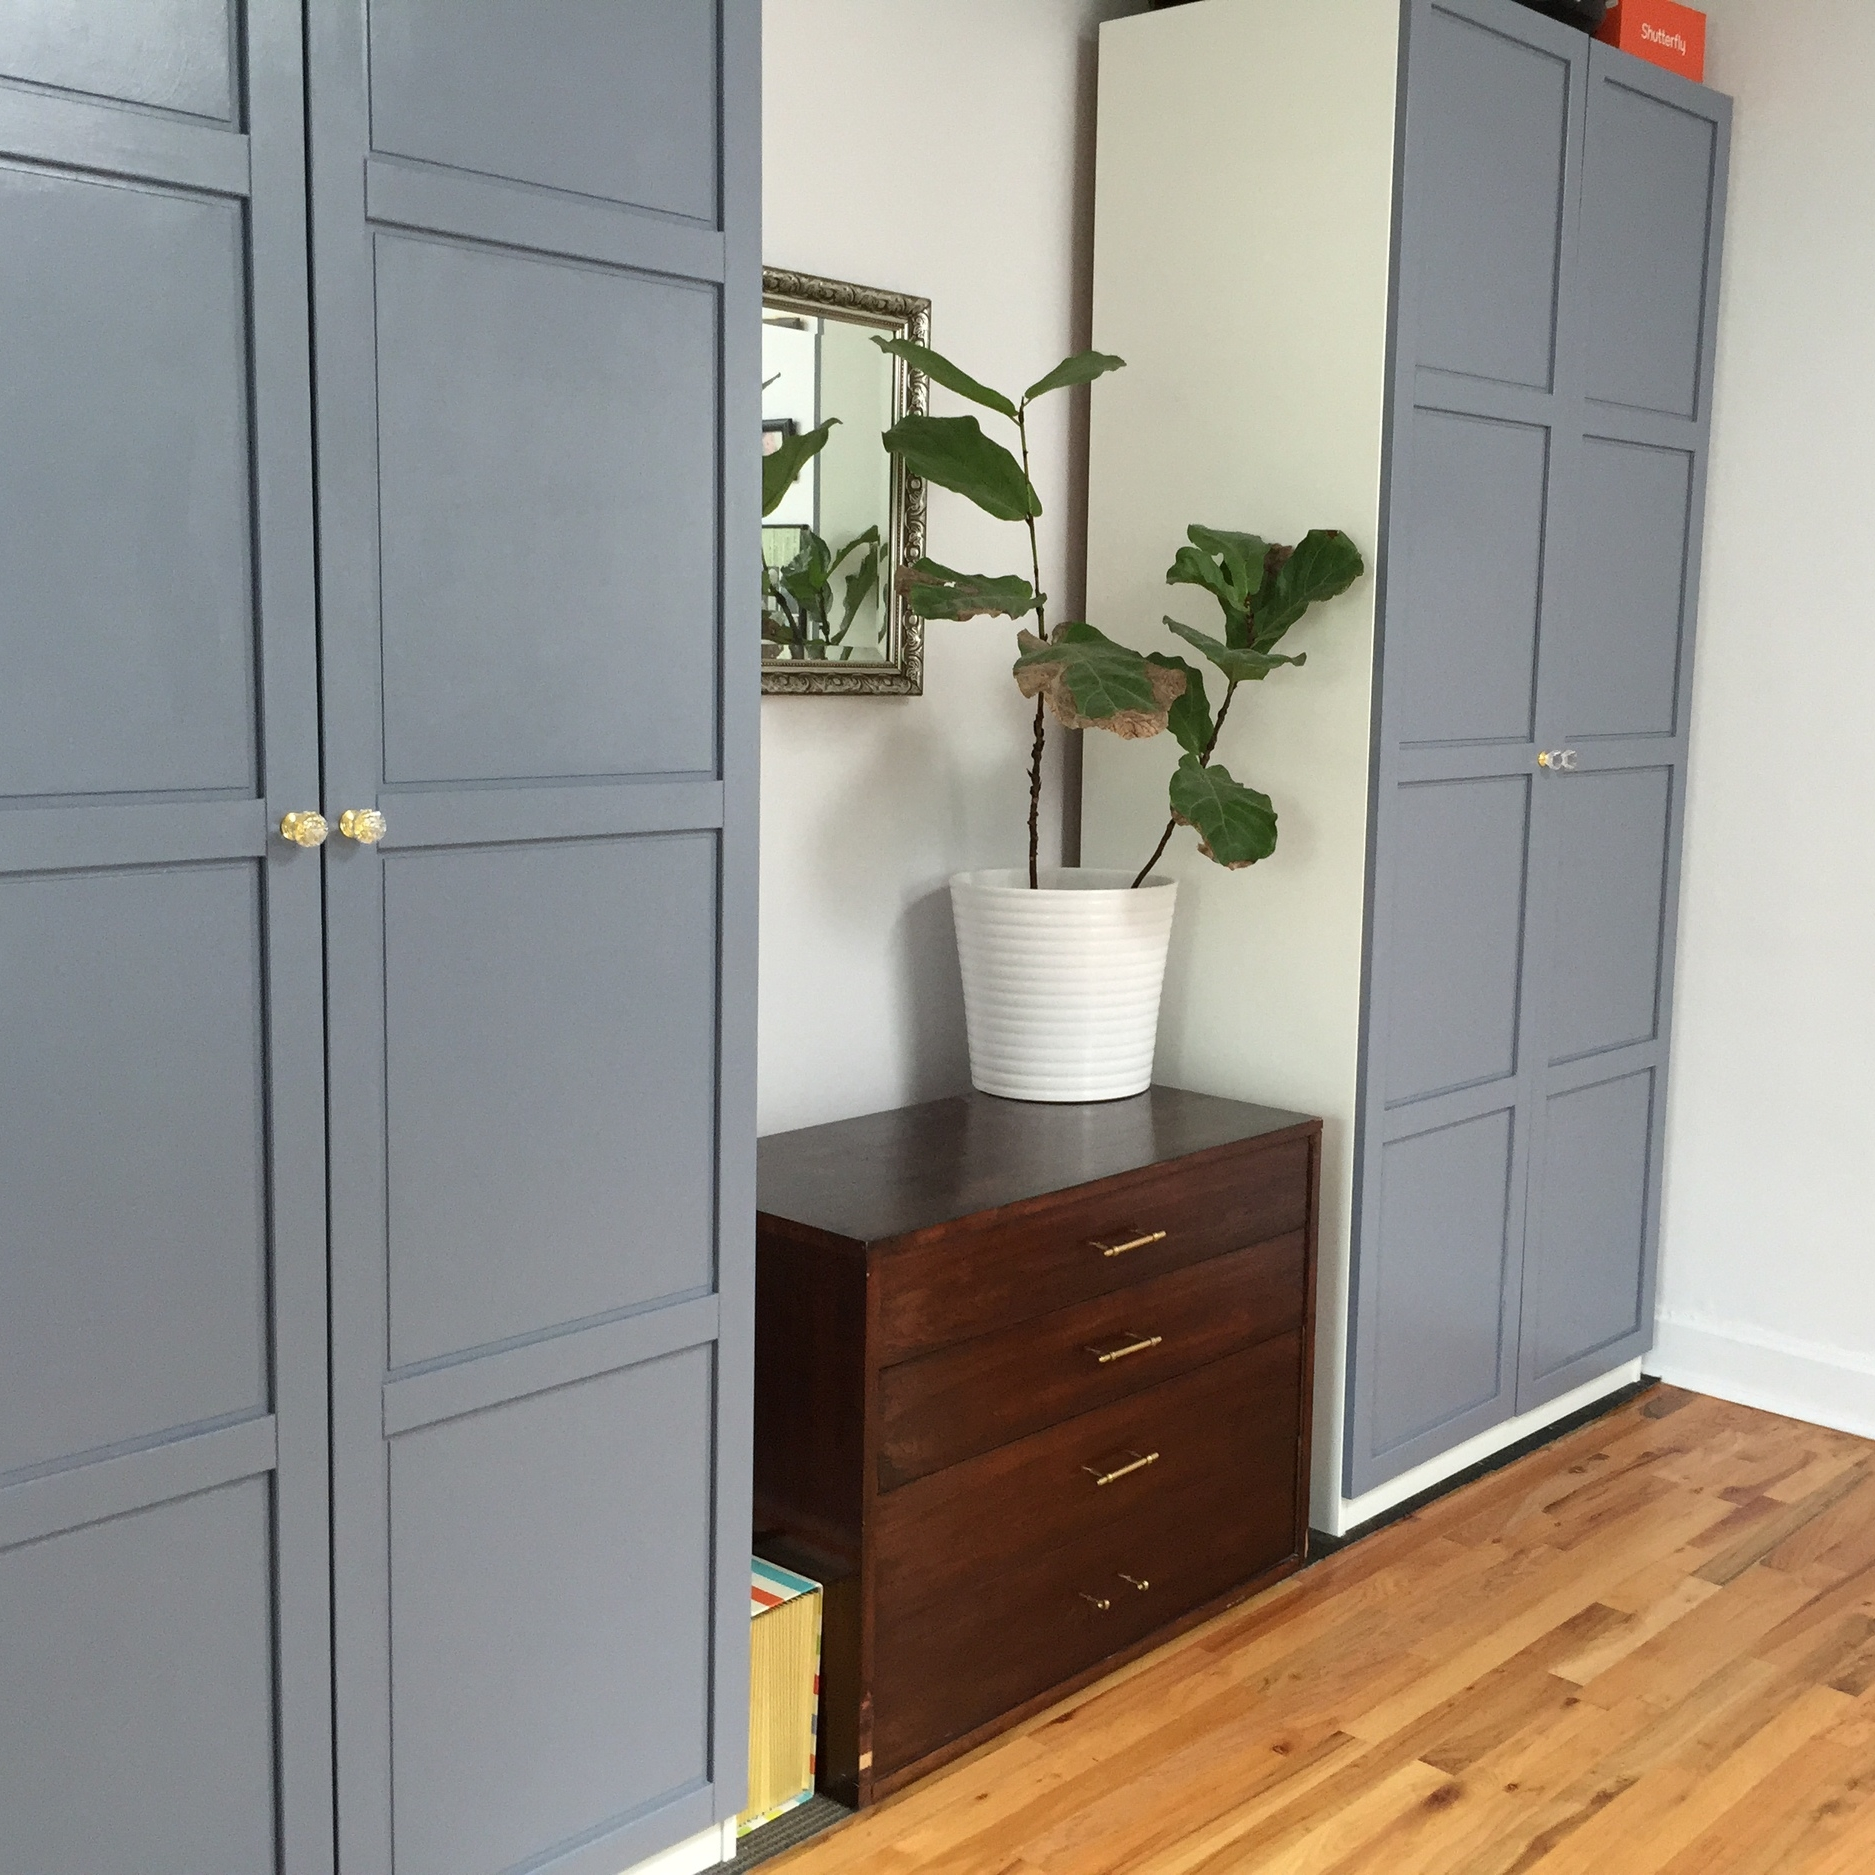 The IKEA PAX wardrobes I painted and added hardware to, and one of our favorite plants.